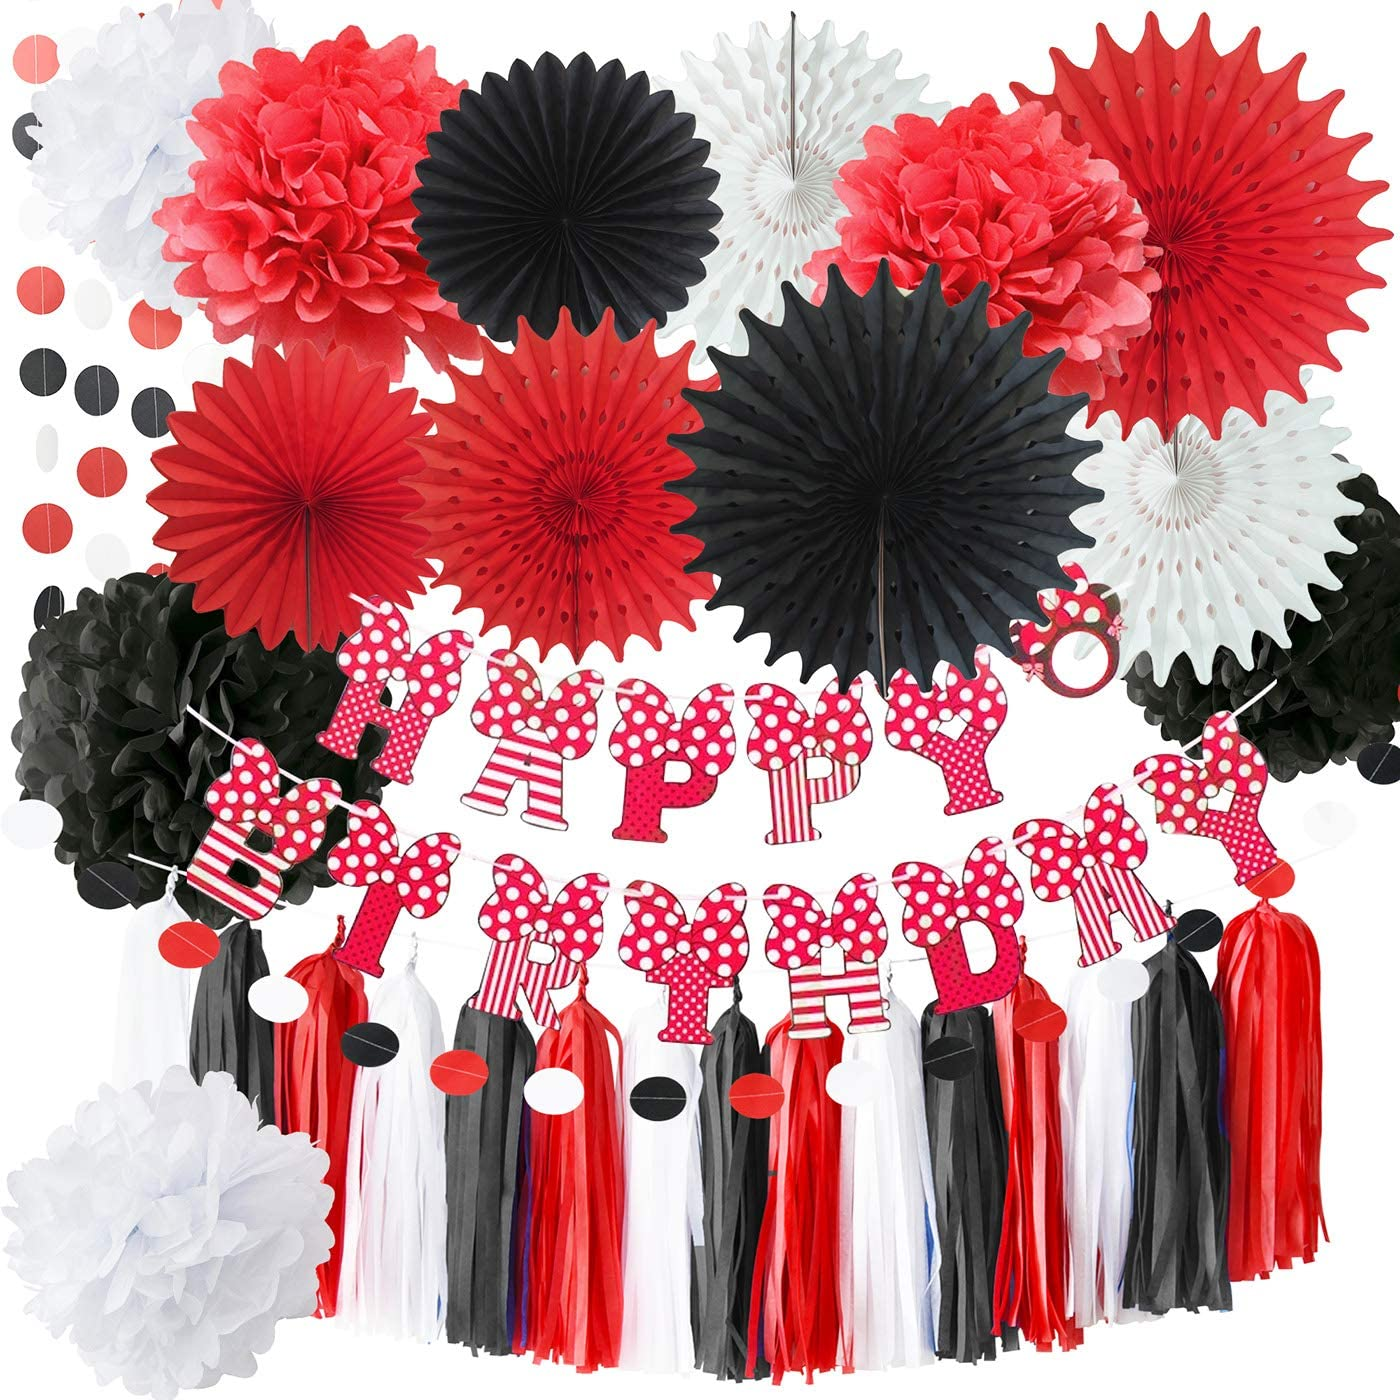 Mickey Mouse Party Supplies Red Black White Party Decorations 7pcs Tissue Paper Fans for Minnie Mouse Birthday Party Decorations Red Black Birthday Party Baby Shower Decortions Qian/'s Party